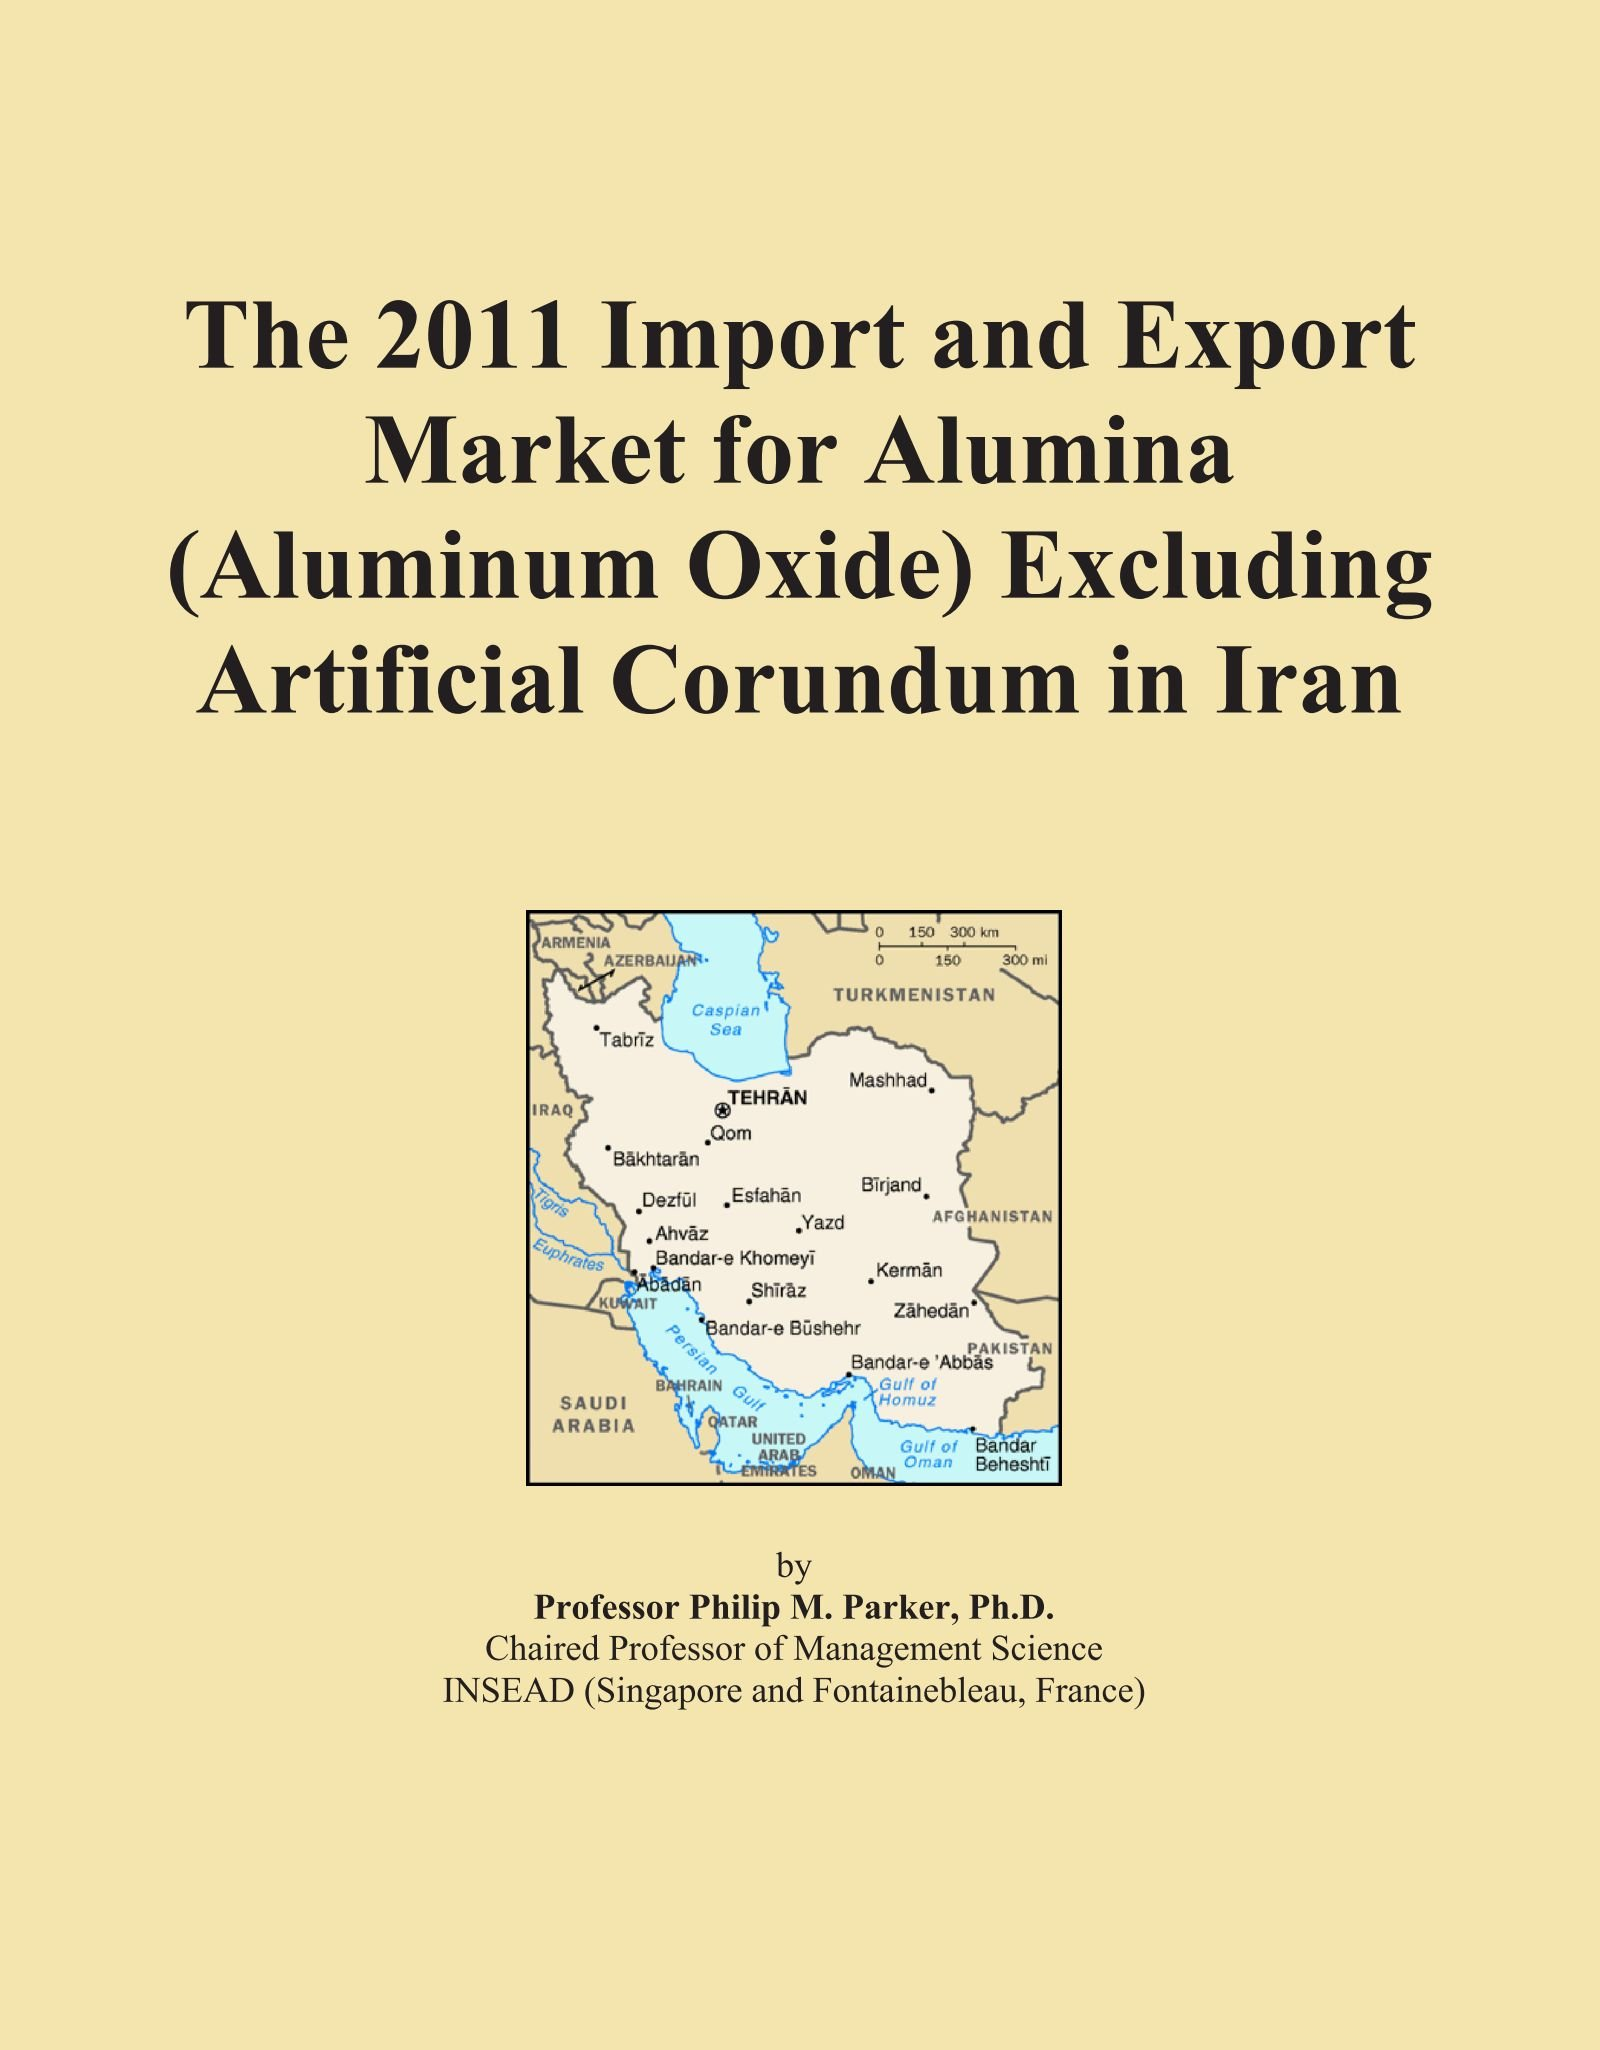 The 2011 Import and Export Market for Alumina (Aluminum Oxide